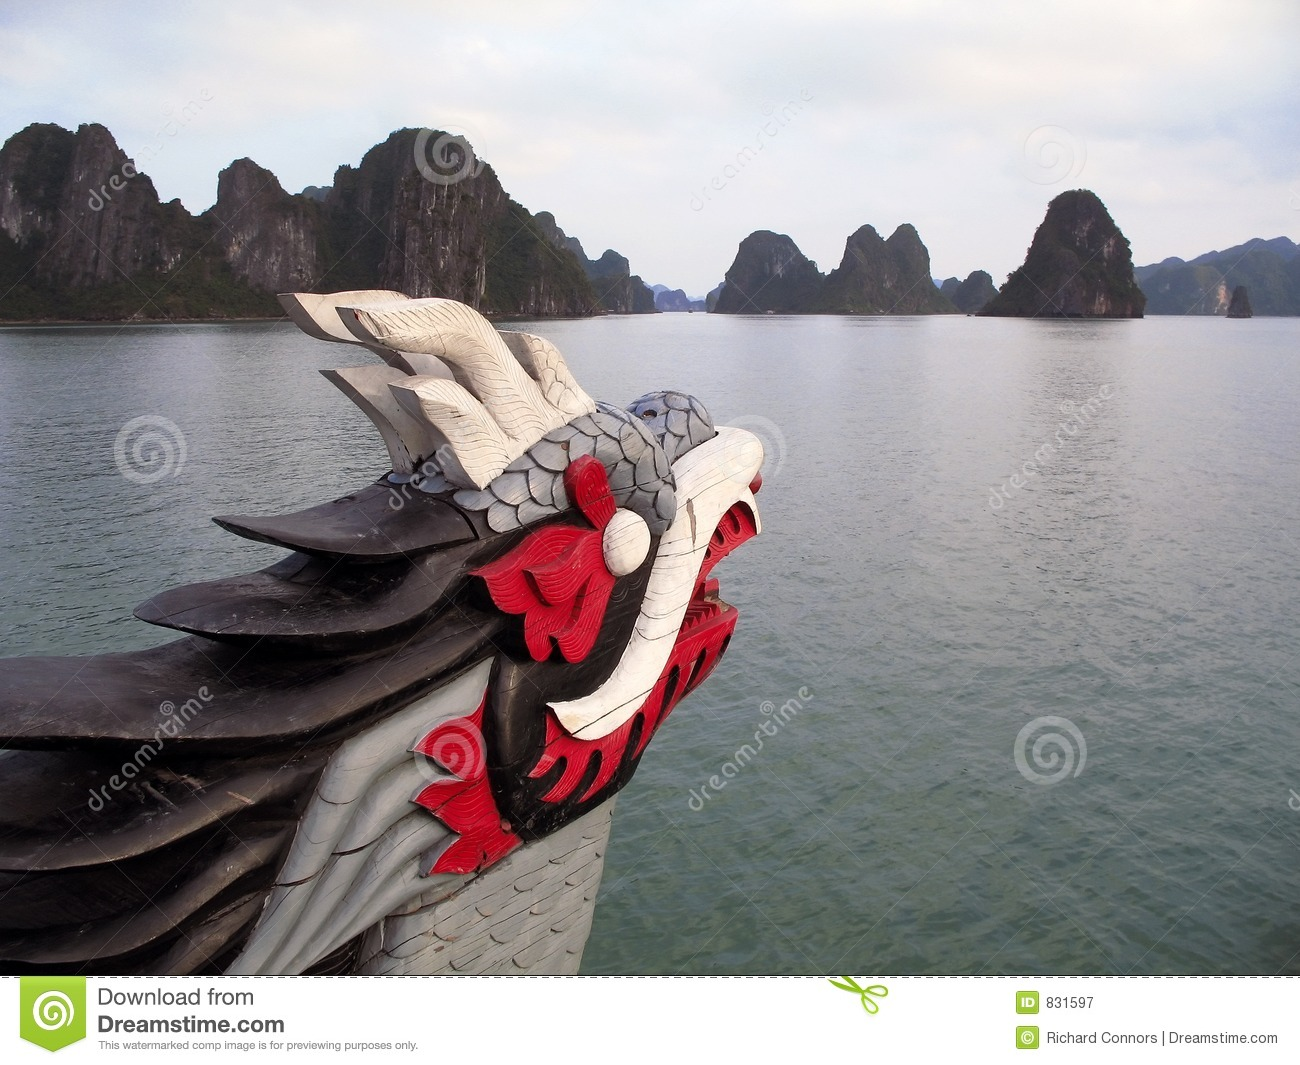 Dragon figurehead on Halong Bay